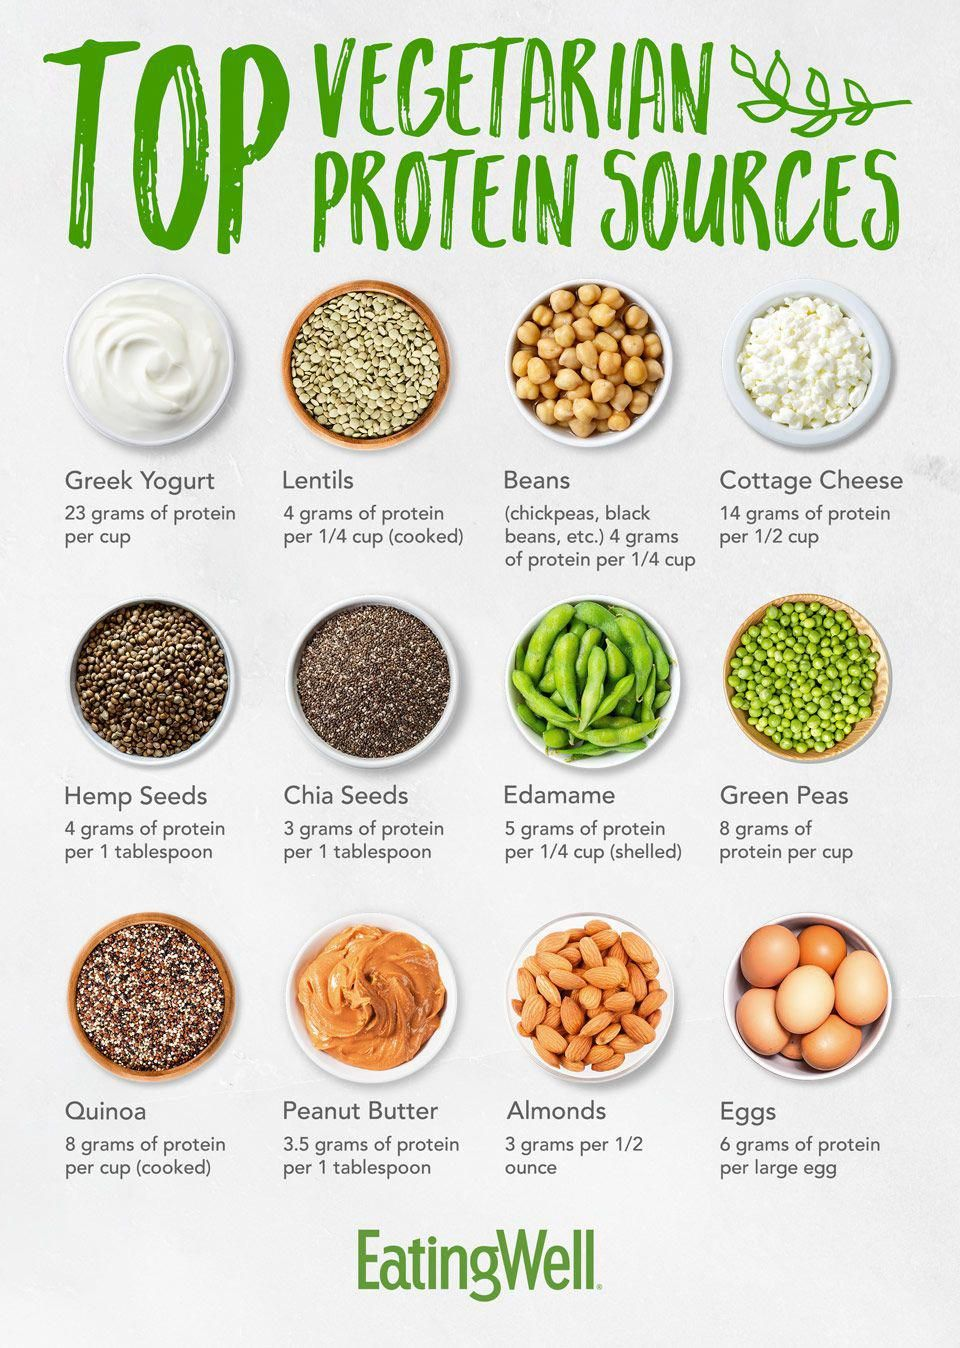 Top Vegetarian Protein Sources EatingWell HealthyEating